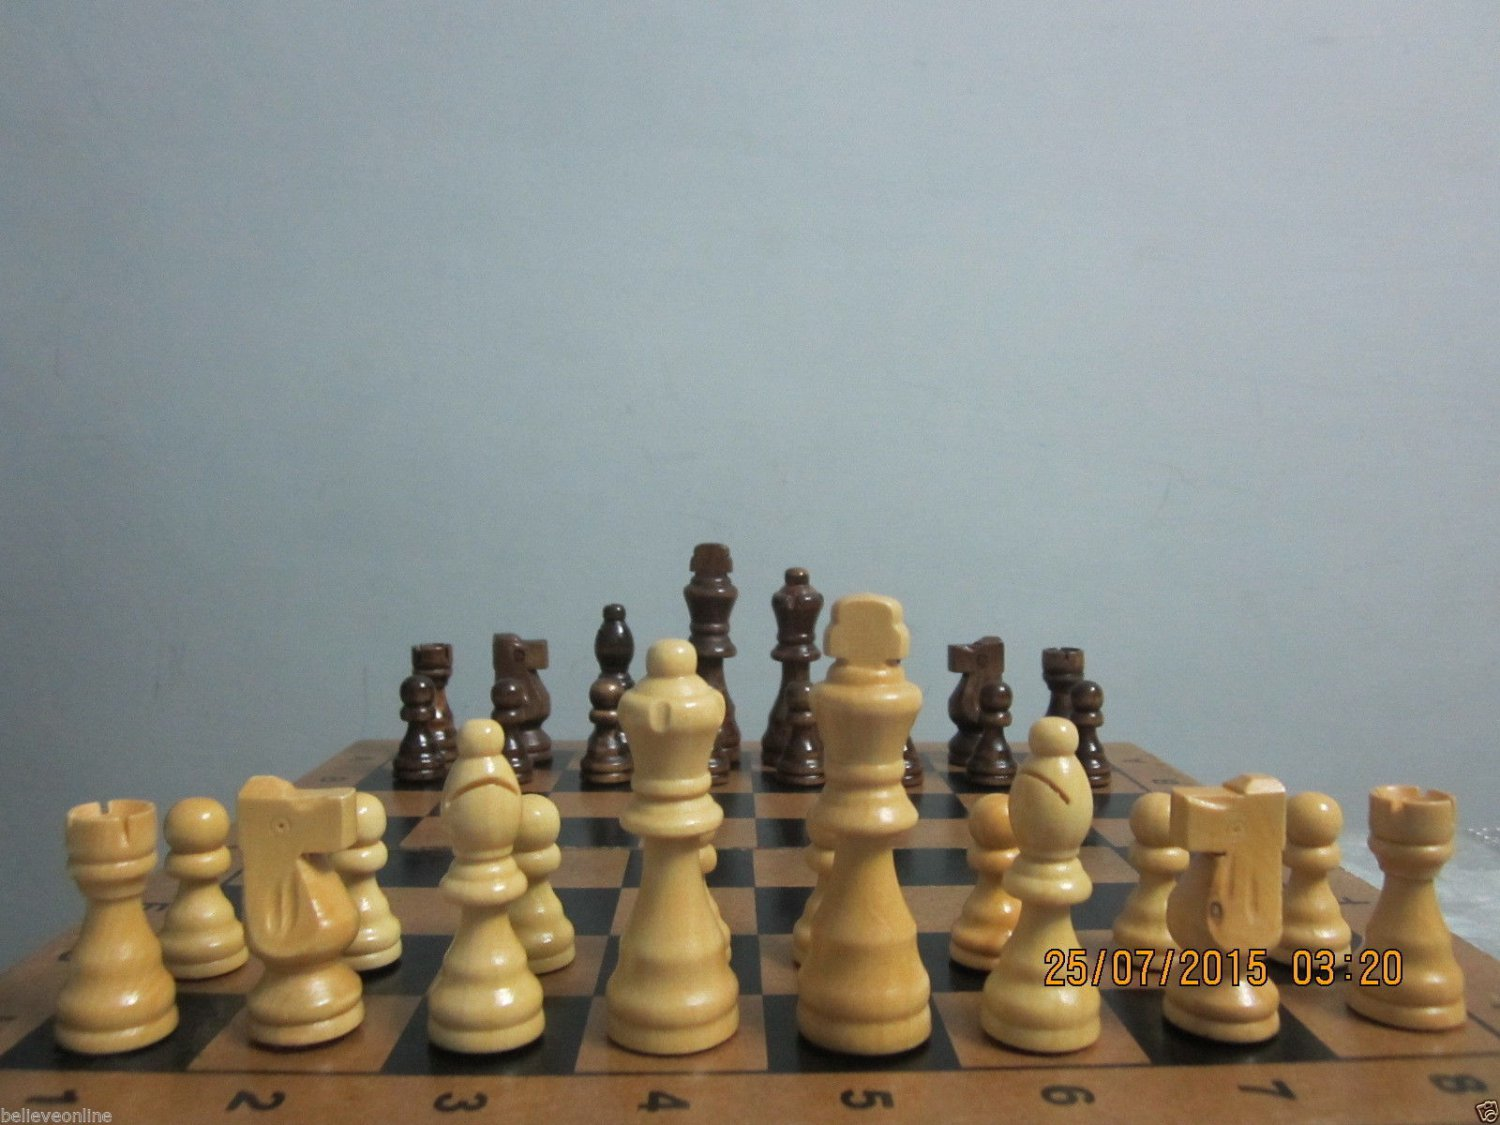 "Brand New Set of Wooden Chessmen Chess Pieces - 3.5"" King Size"